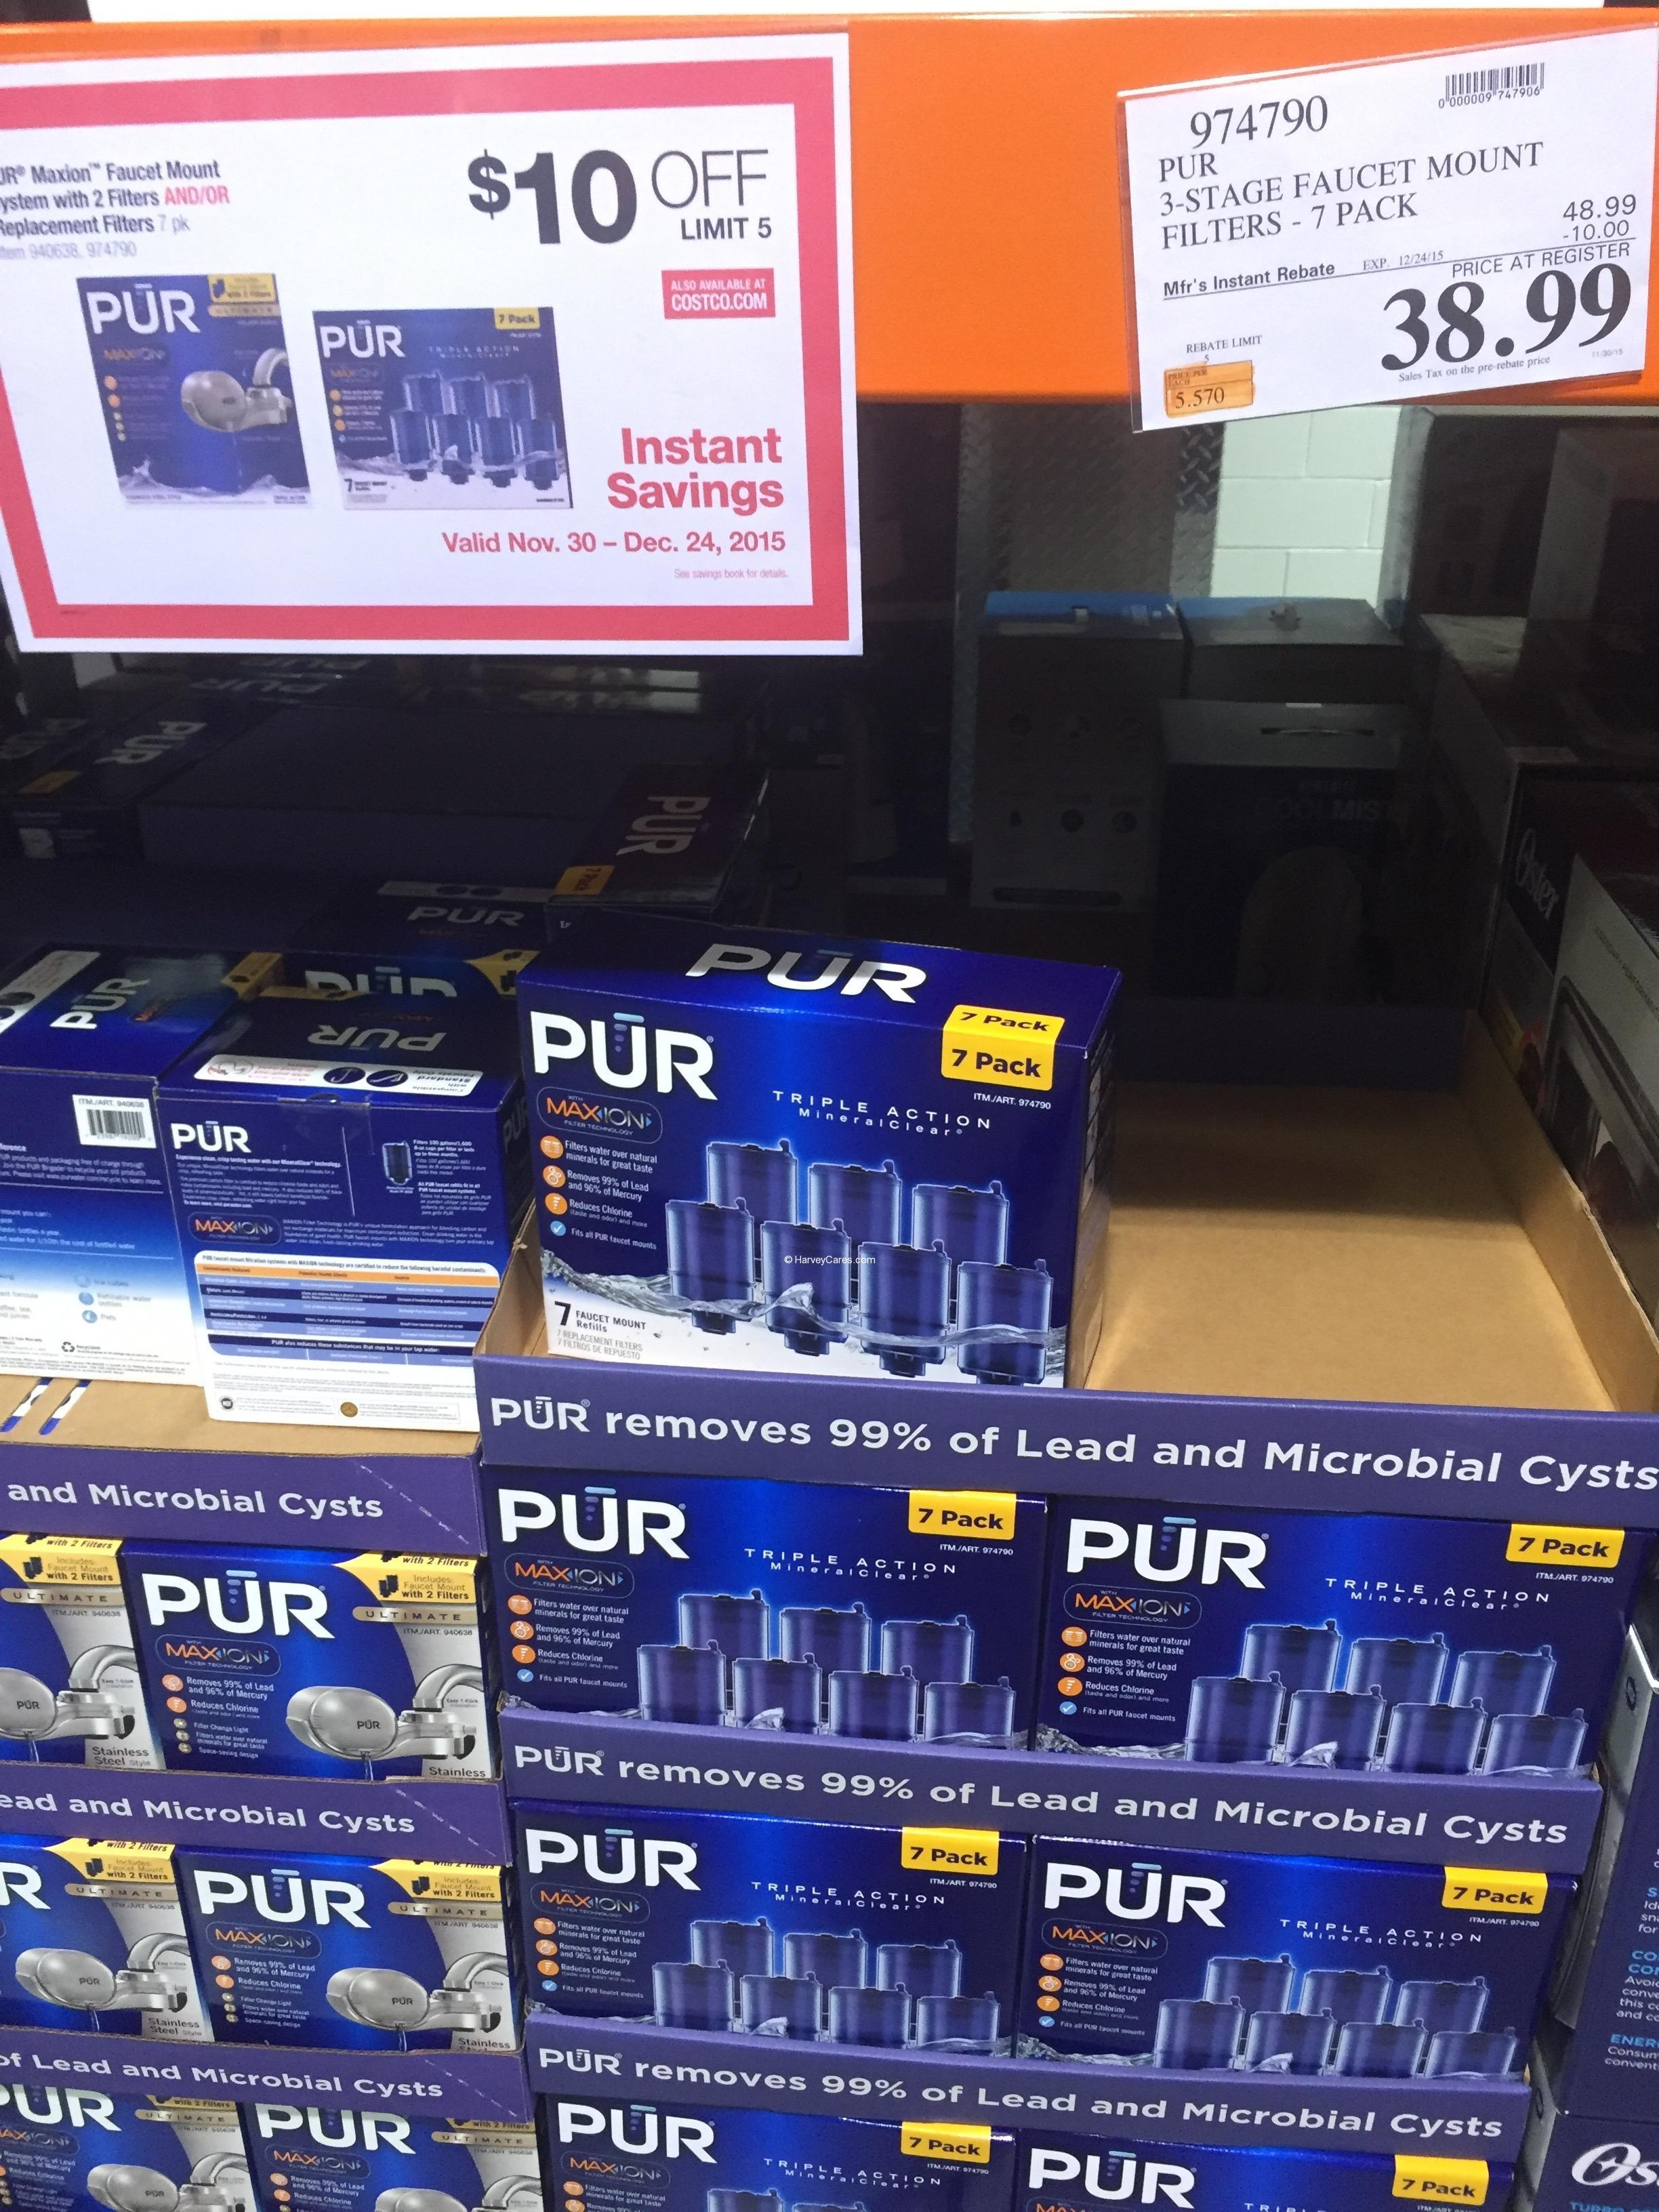 costco water filter. PUR MaxION Water Filter Replacement Costco Price Panel D